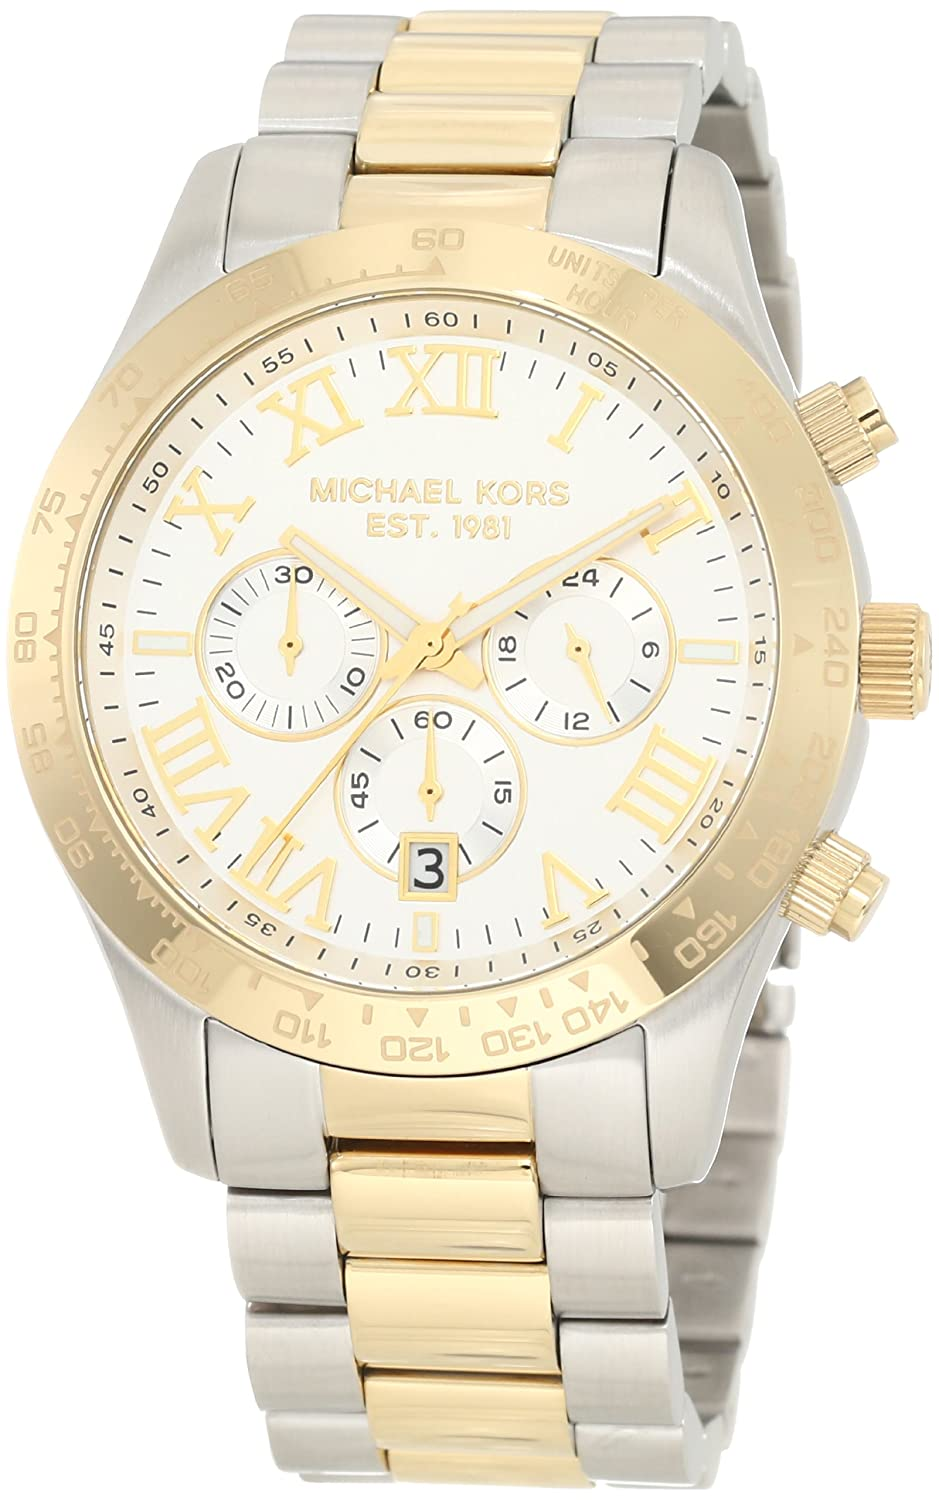 michael kors mk8229 men 39 s watches price in pakistan home. Black Bedroom Furniture Sets. Home Design Ideas